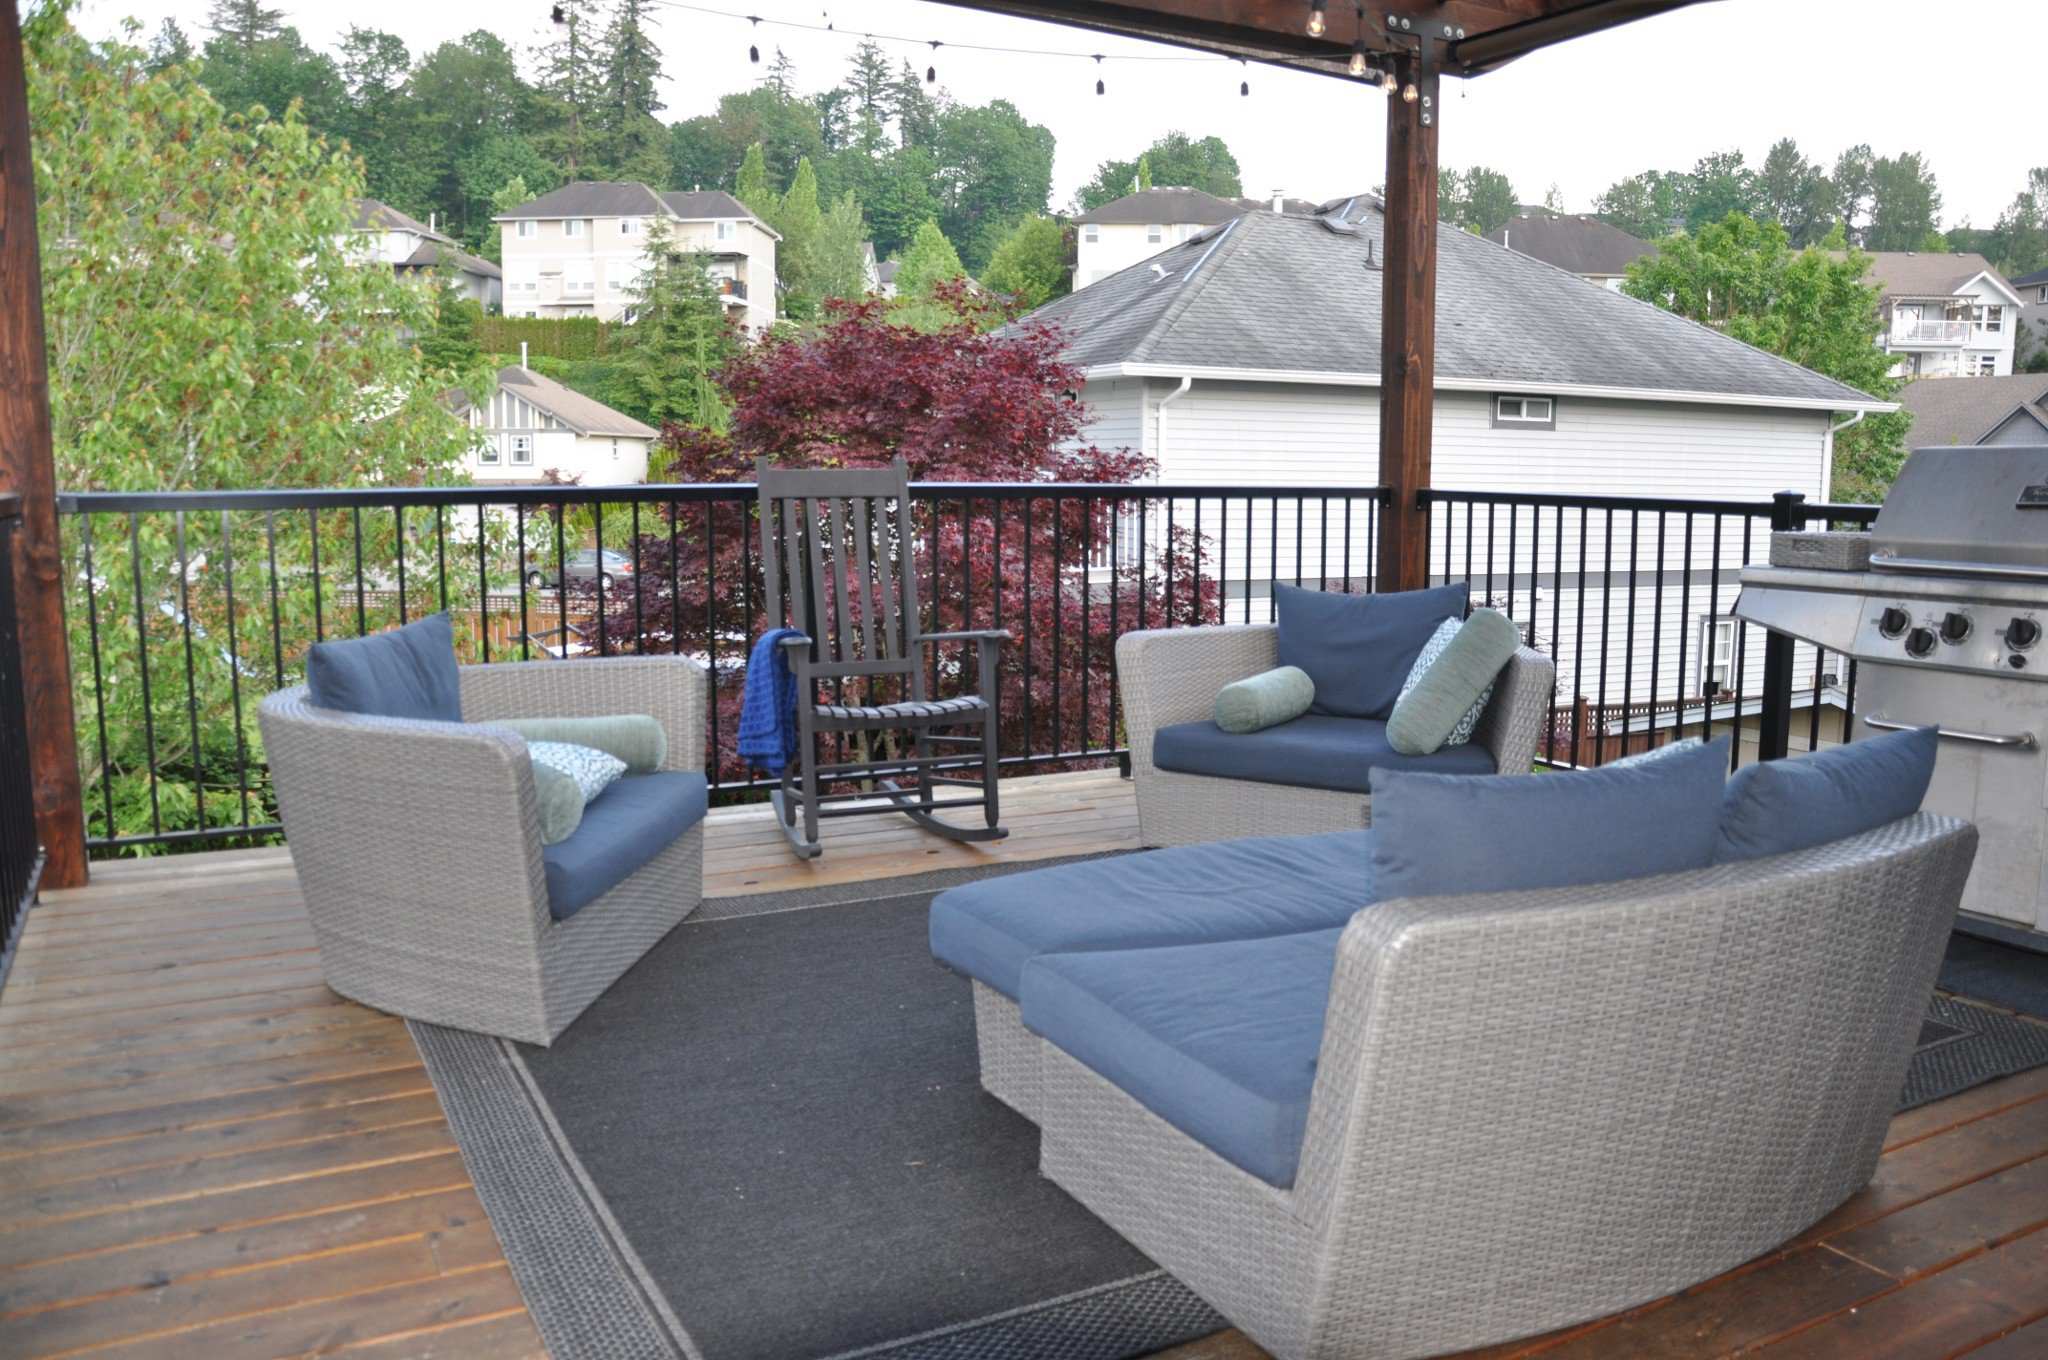 Photo 13: Photos: 4076 Channel St. in Abbotsford: Abbotsford East House for rent